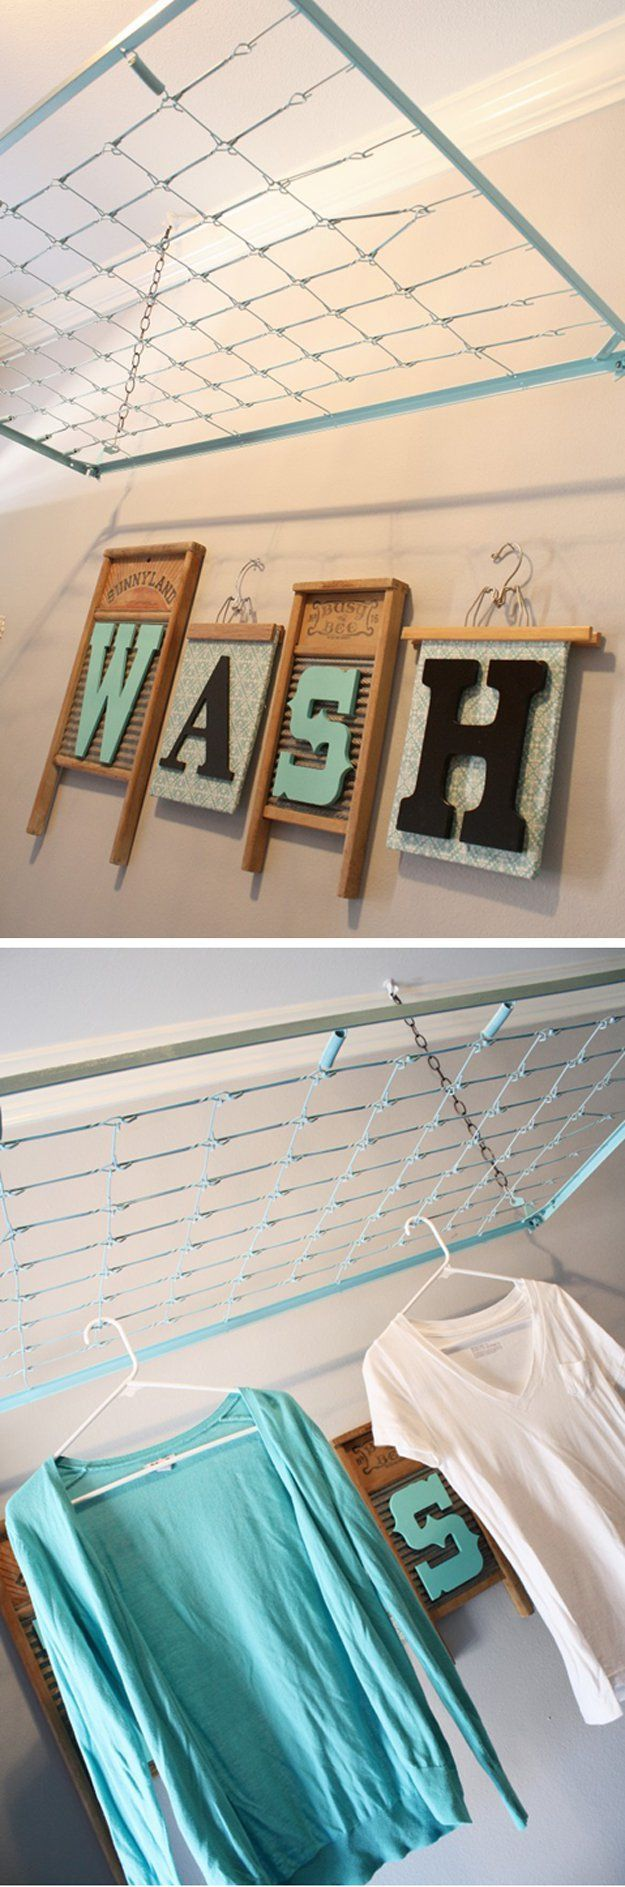 DIY Organization Ideas for Your Laundry Room | Easy DIY Crafts, Fun Projects, &…